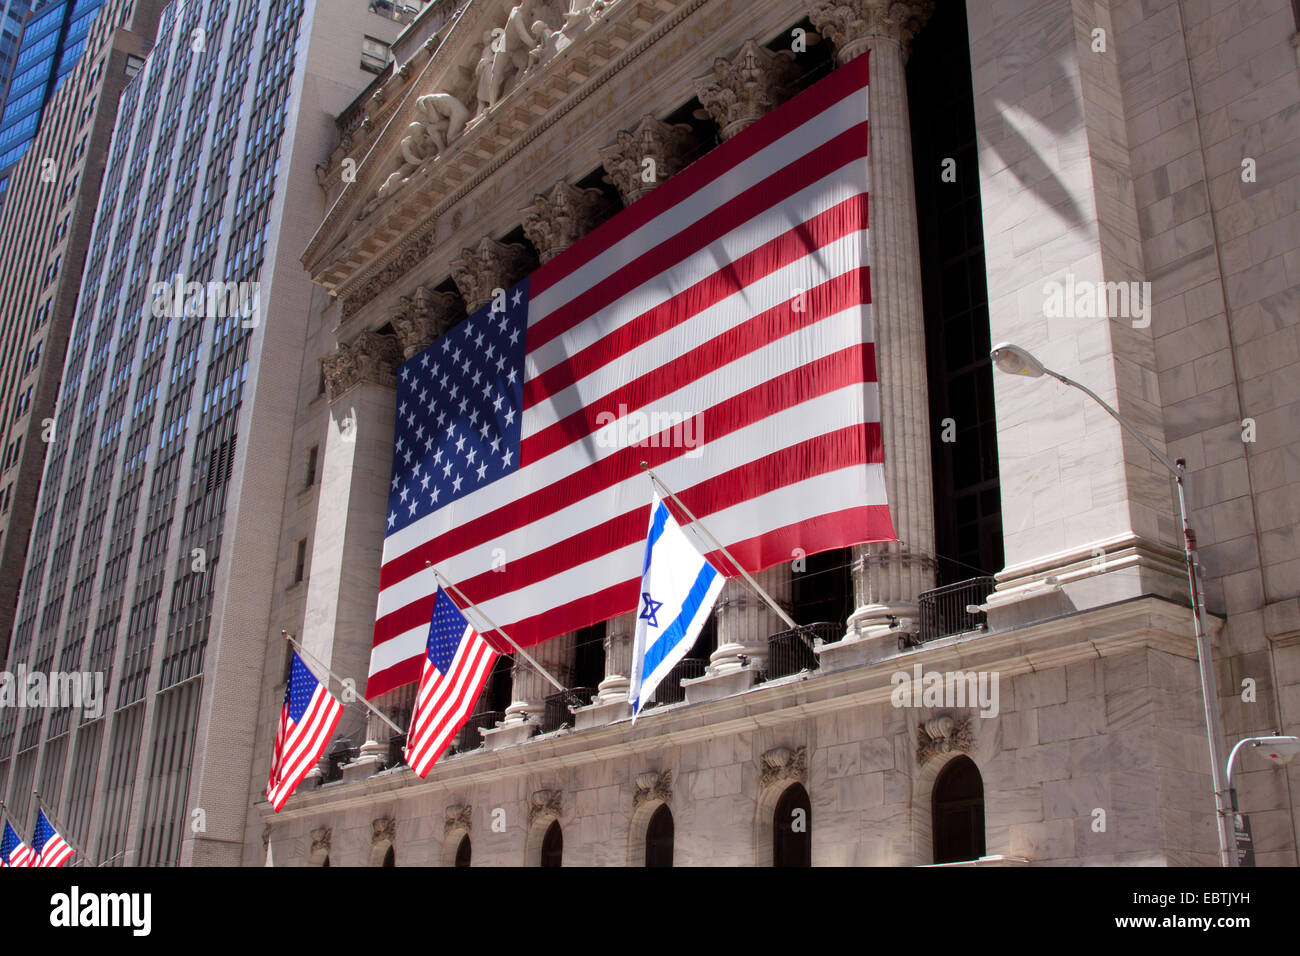 New York Stock Exchange with American Flags, USA, New York City - Stock Image